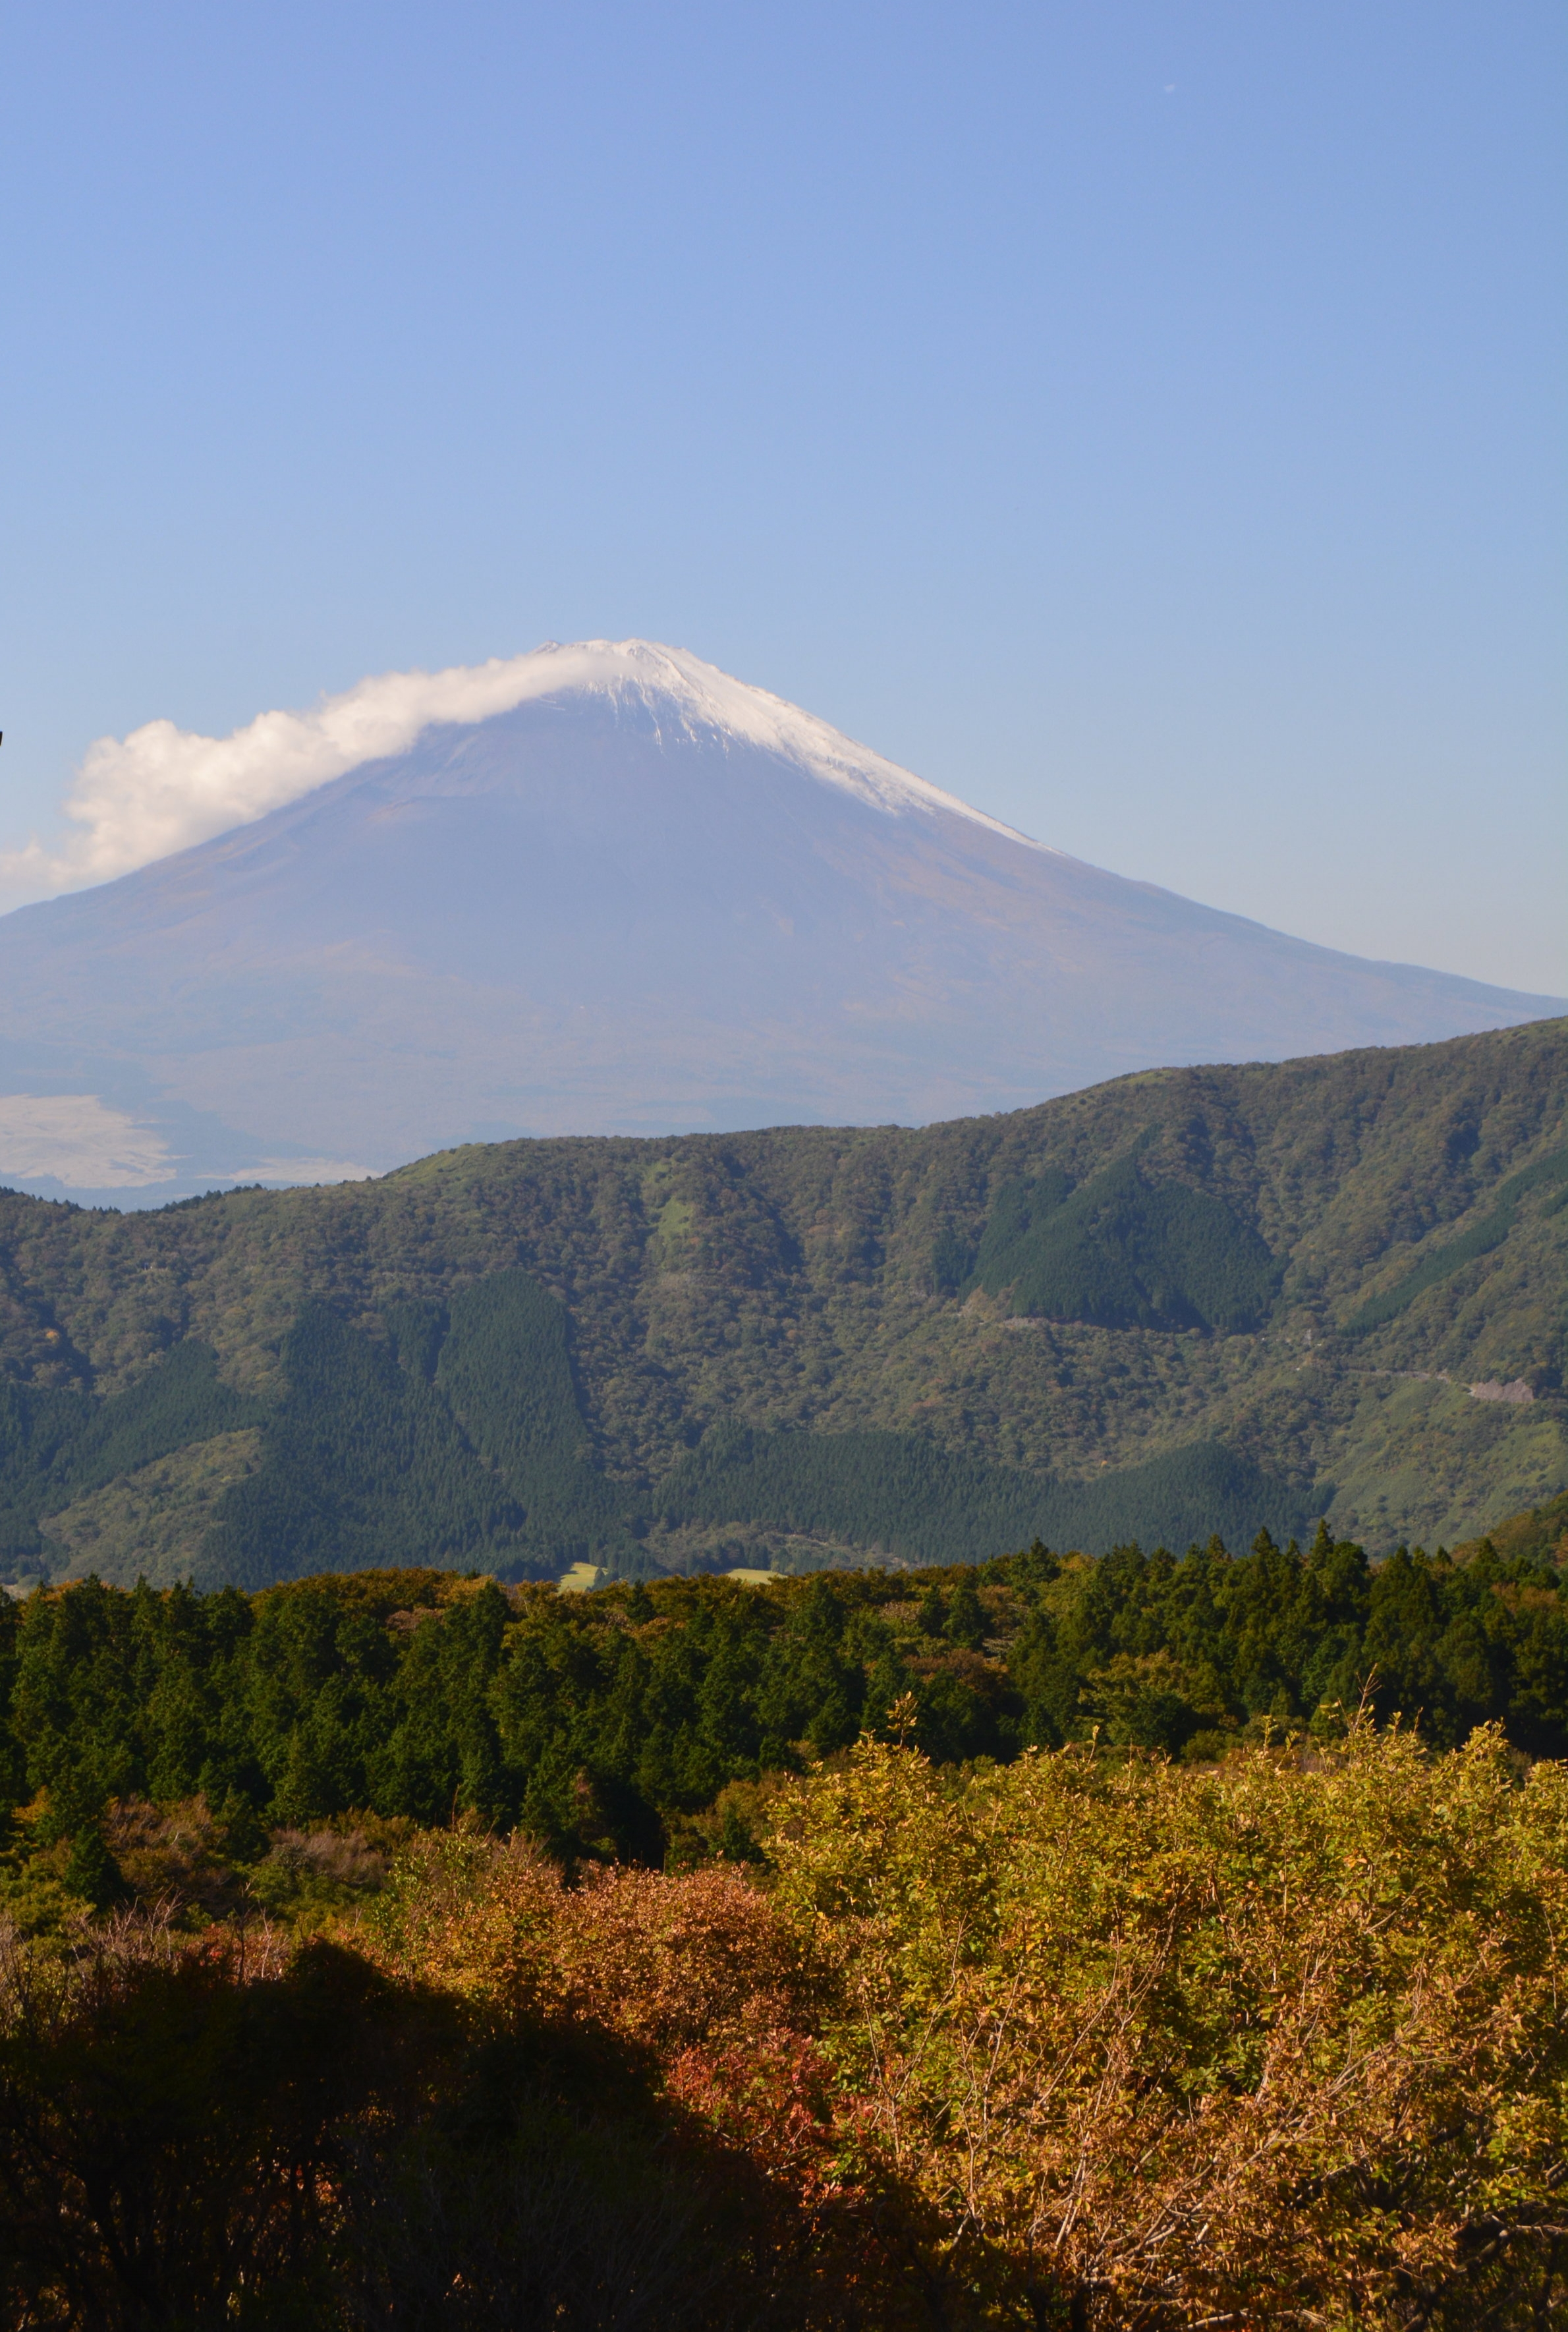 - I was blessed with good weather that allowed me to see Mount Fuji from both Hakone, a small mountain town, and Tokyo.It's usually shrouded in fog, but I got lucky twice!